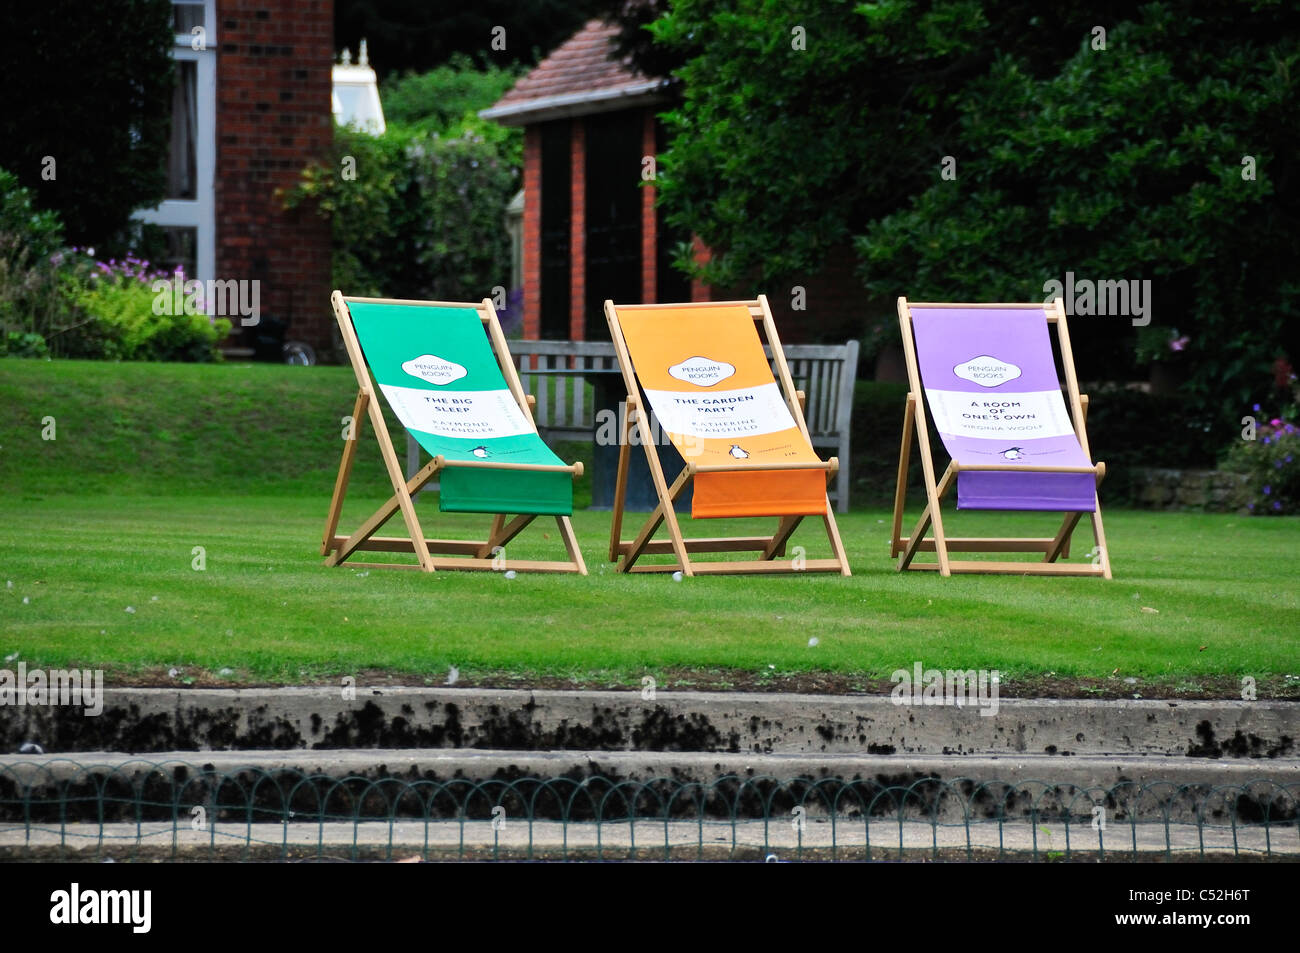 Deck Chairs With Classic Penguin Book Cover Designs On A Bankside Of  Private House In Henley OnThames, Oxfordshire, UK